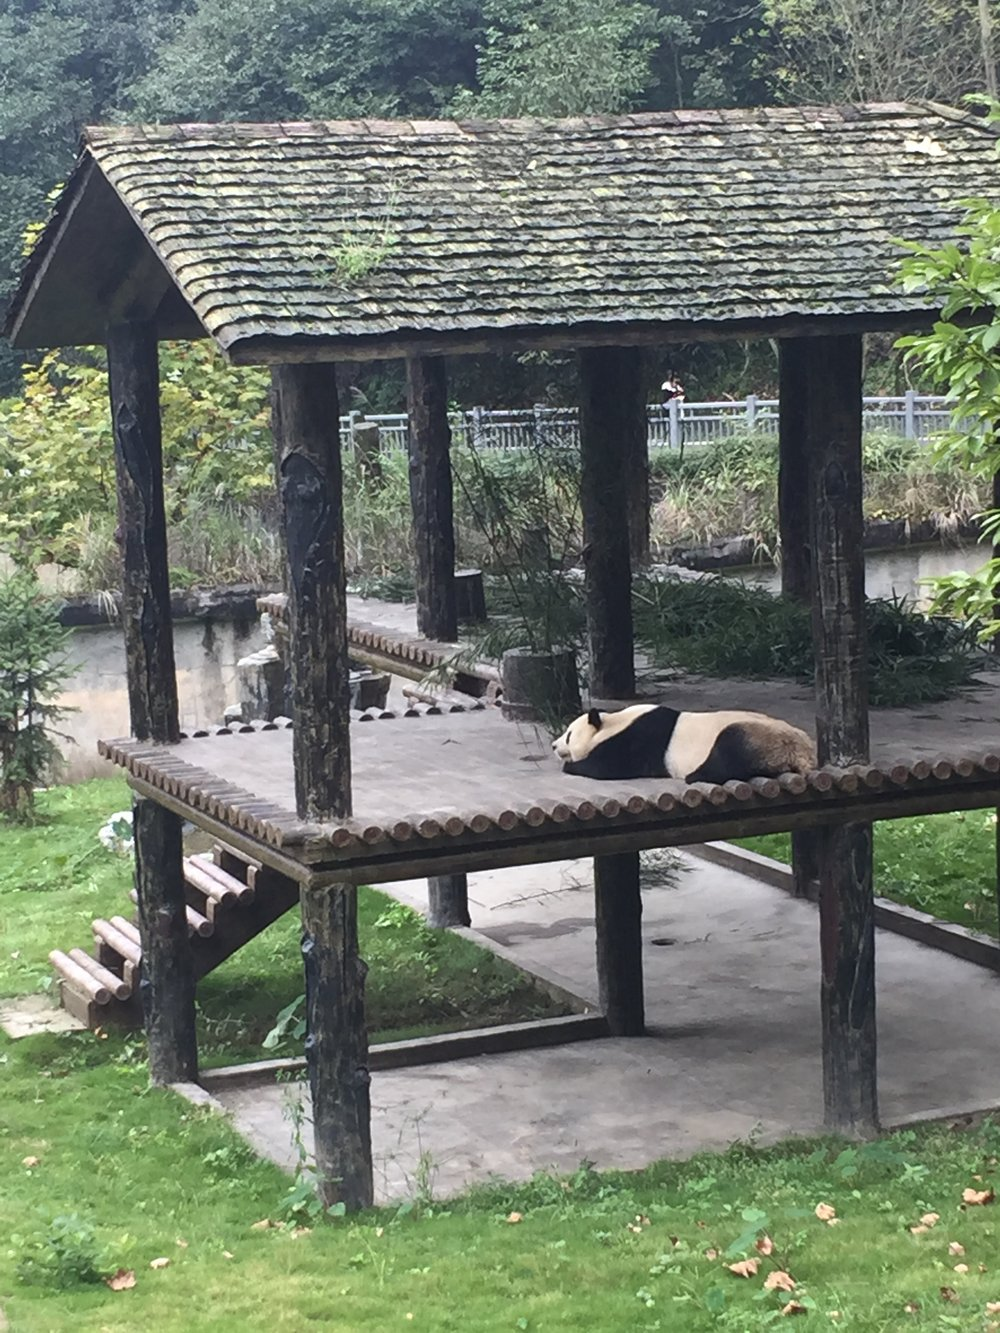 Panda sleeping in his hut